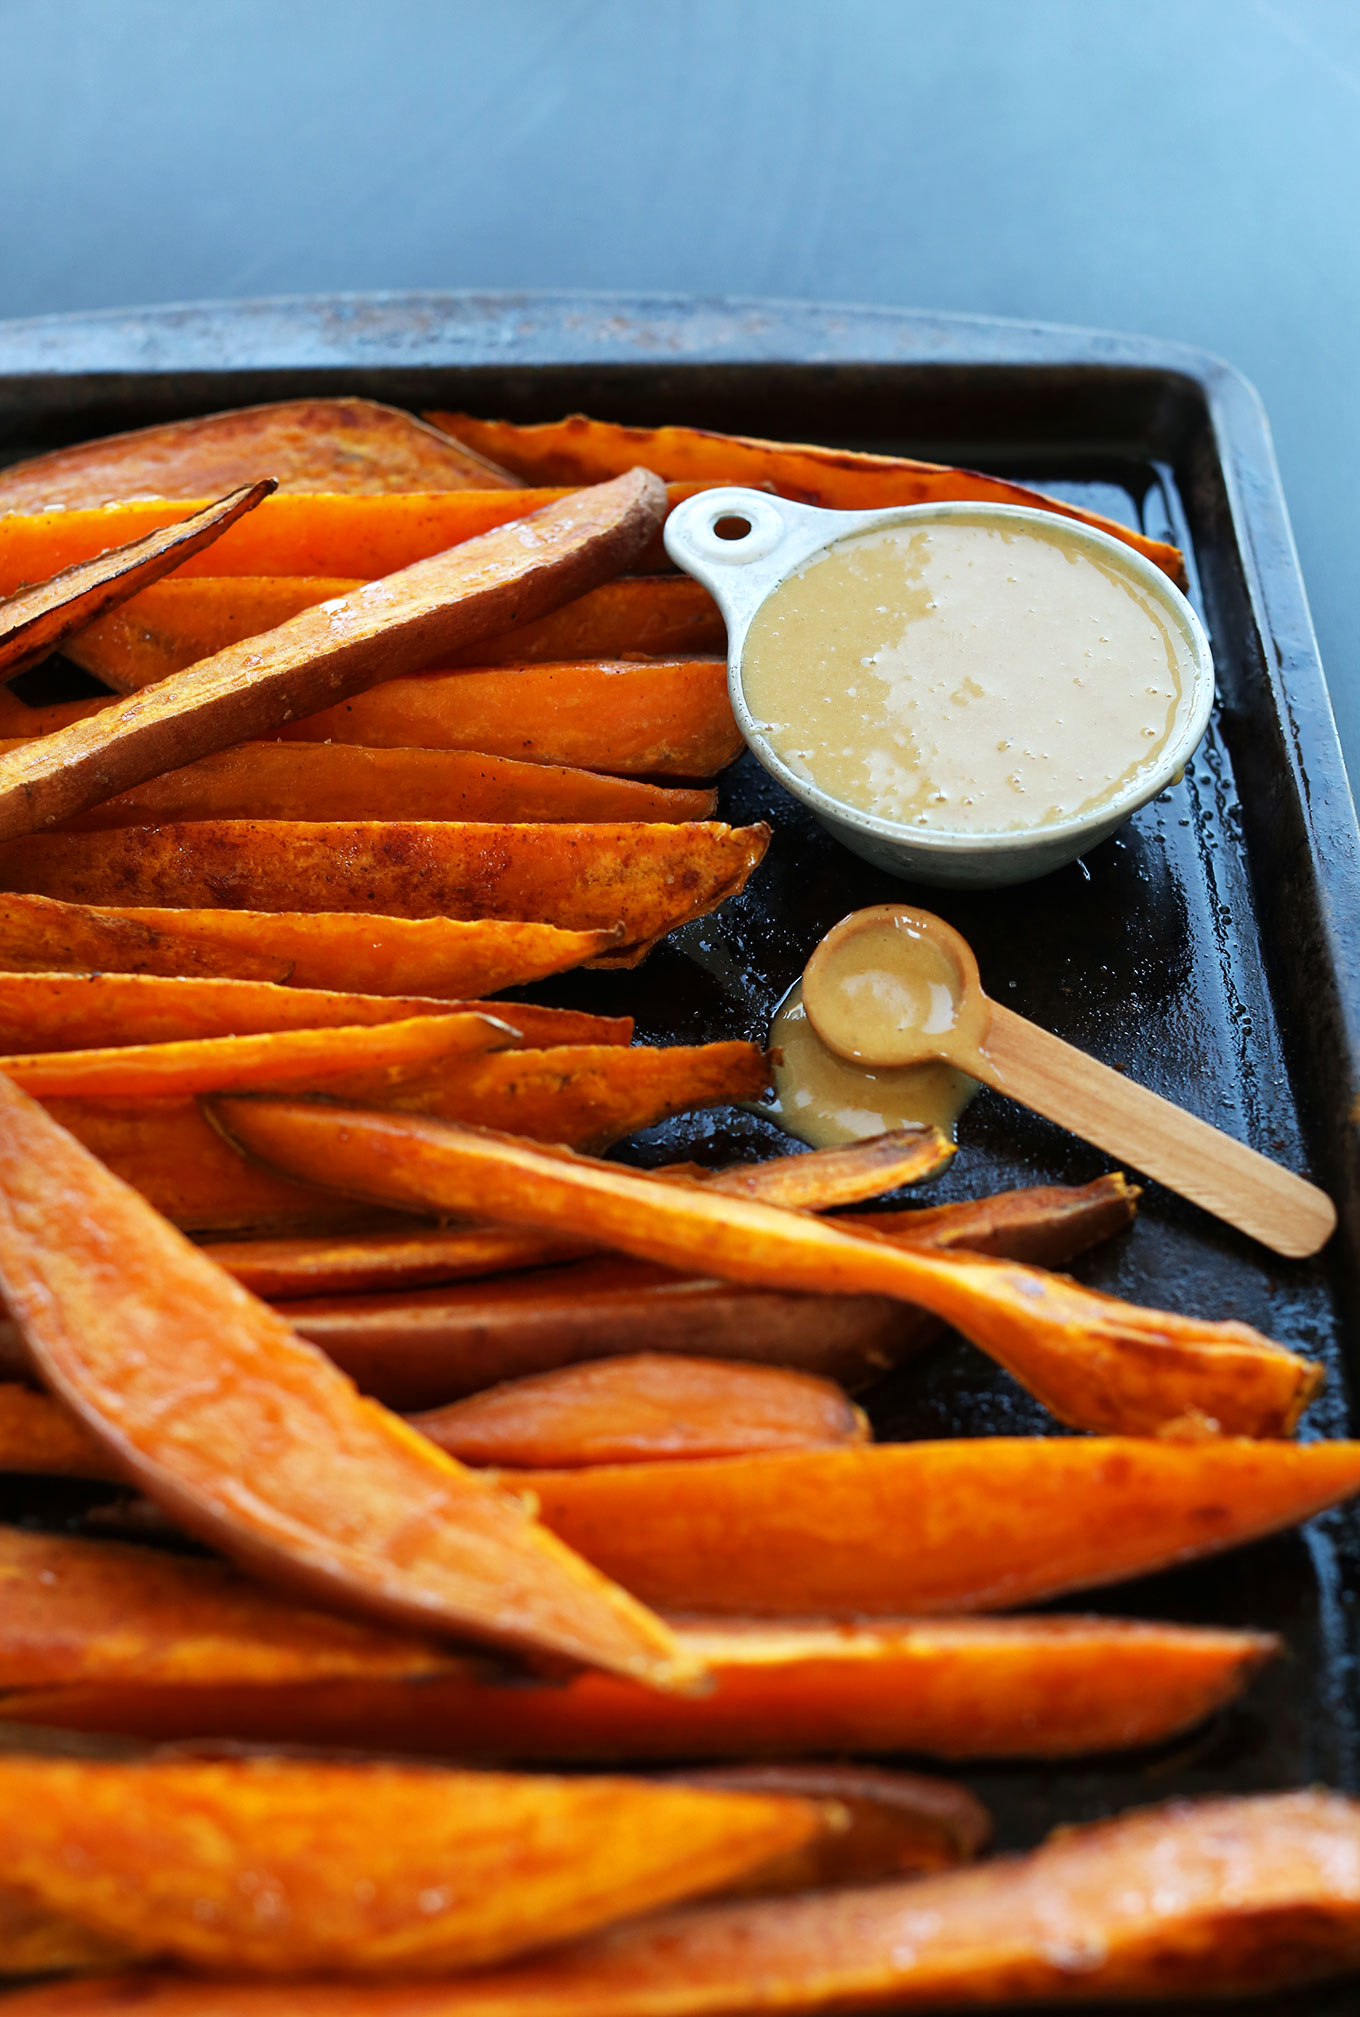 Baking sheet with baked sweet potatoes and delicious vegan No-Honey Mustard Dipping Sauce